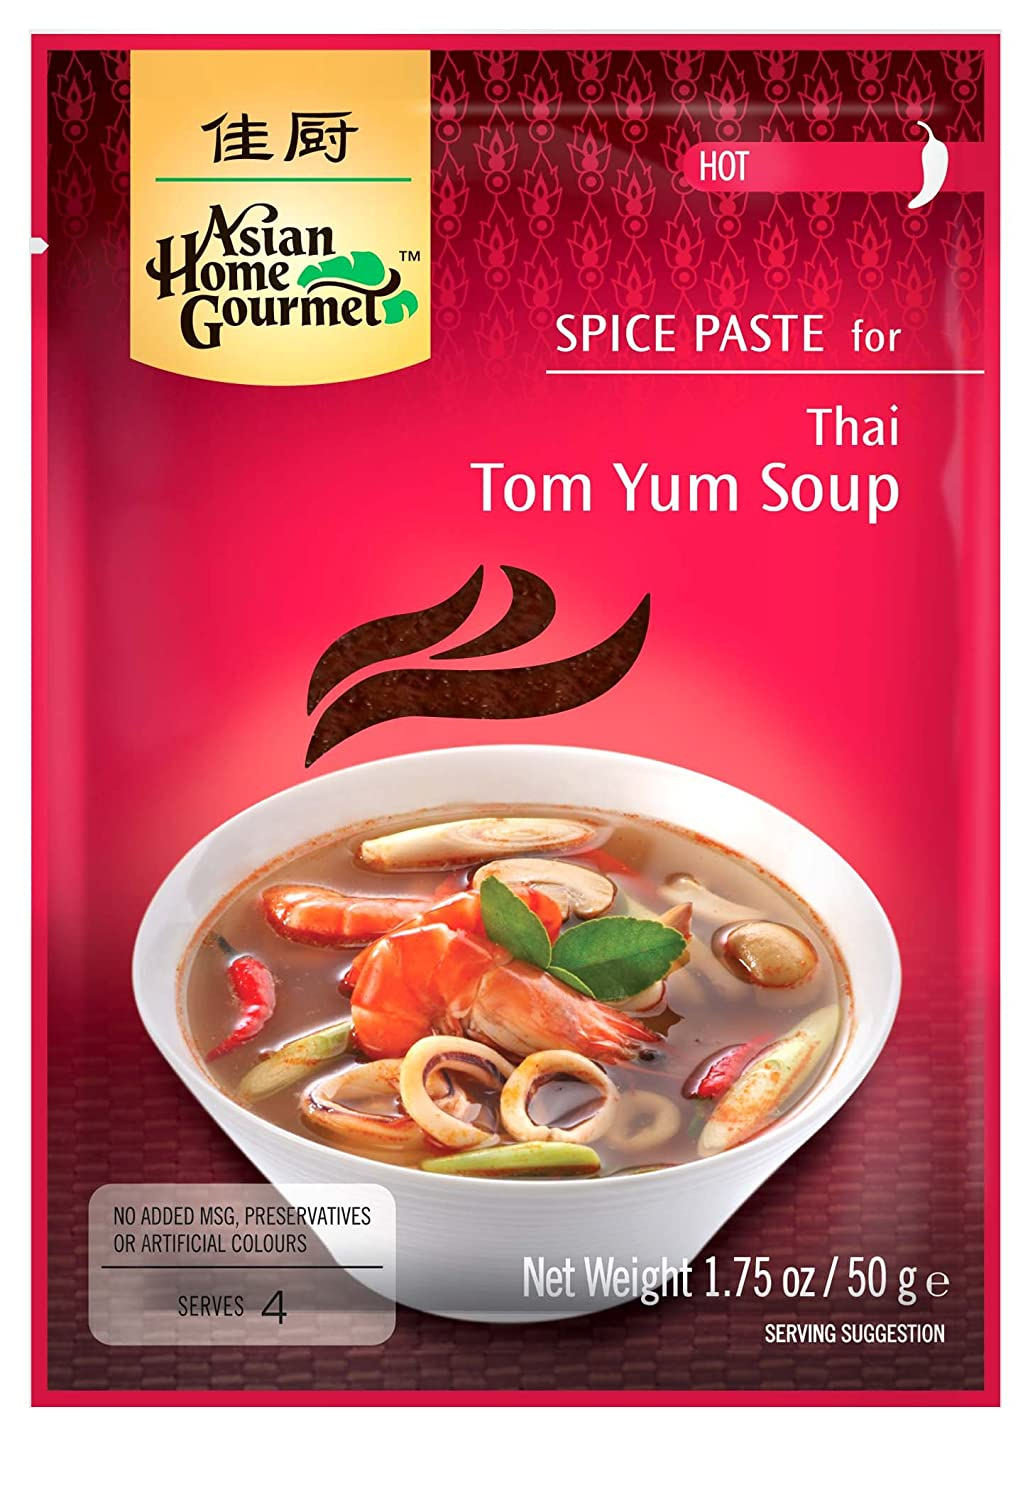 Asian Home Gourmet Spice Paste for Thai Tom Yum Soup, 1.75 oz (Pack of 3)